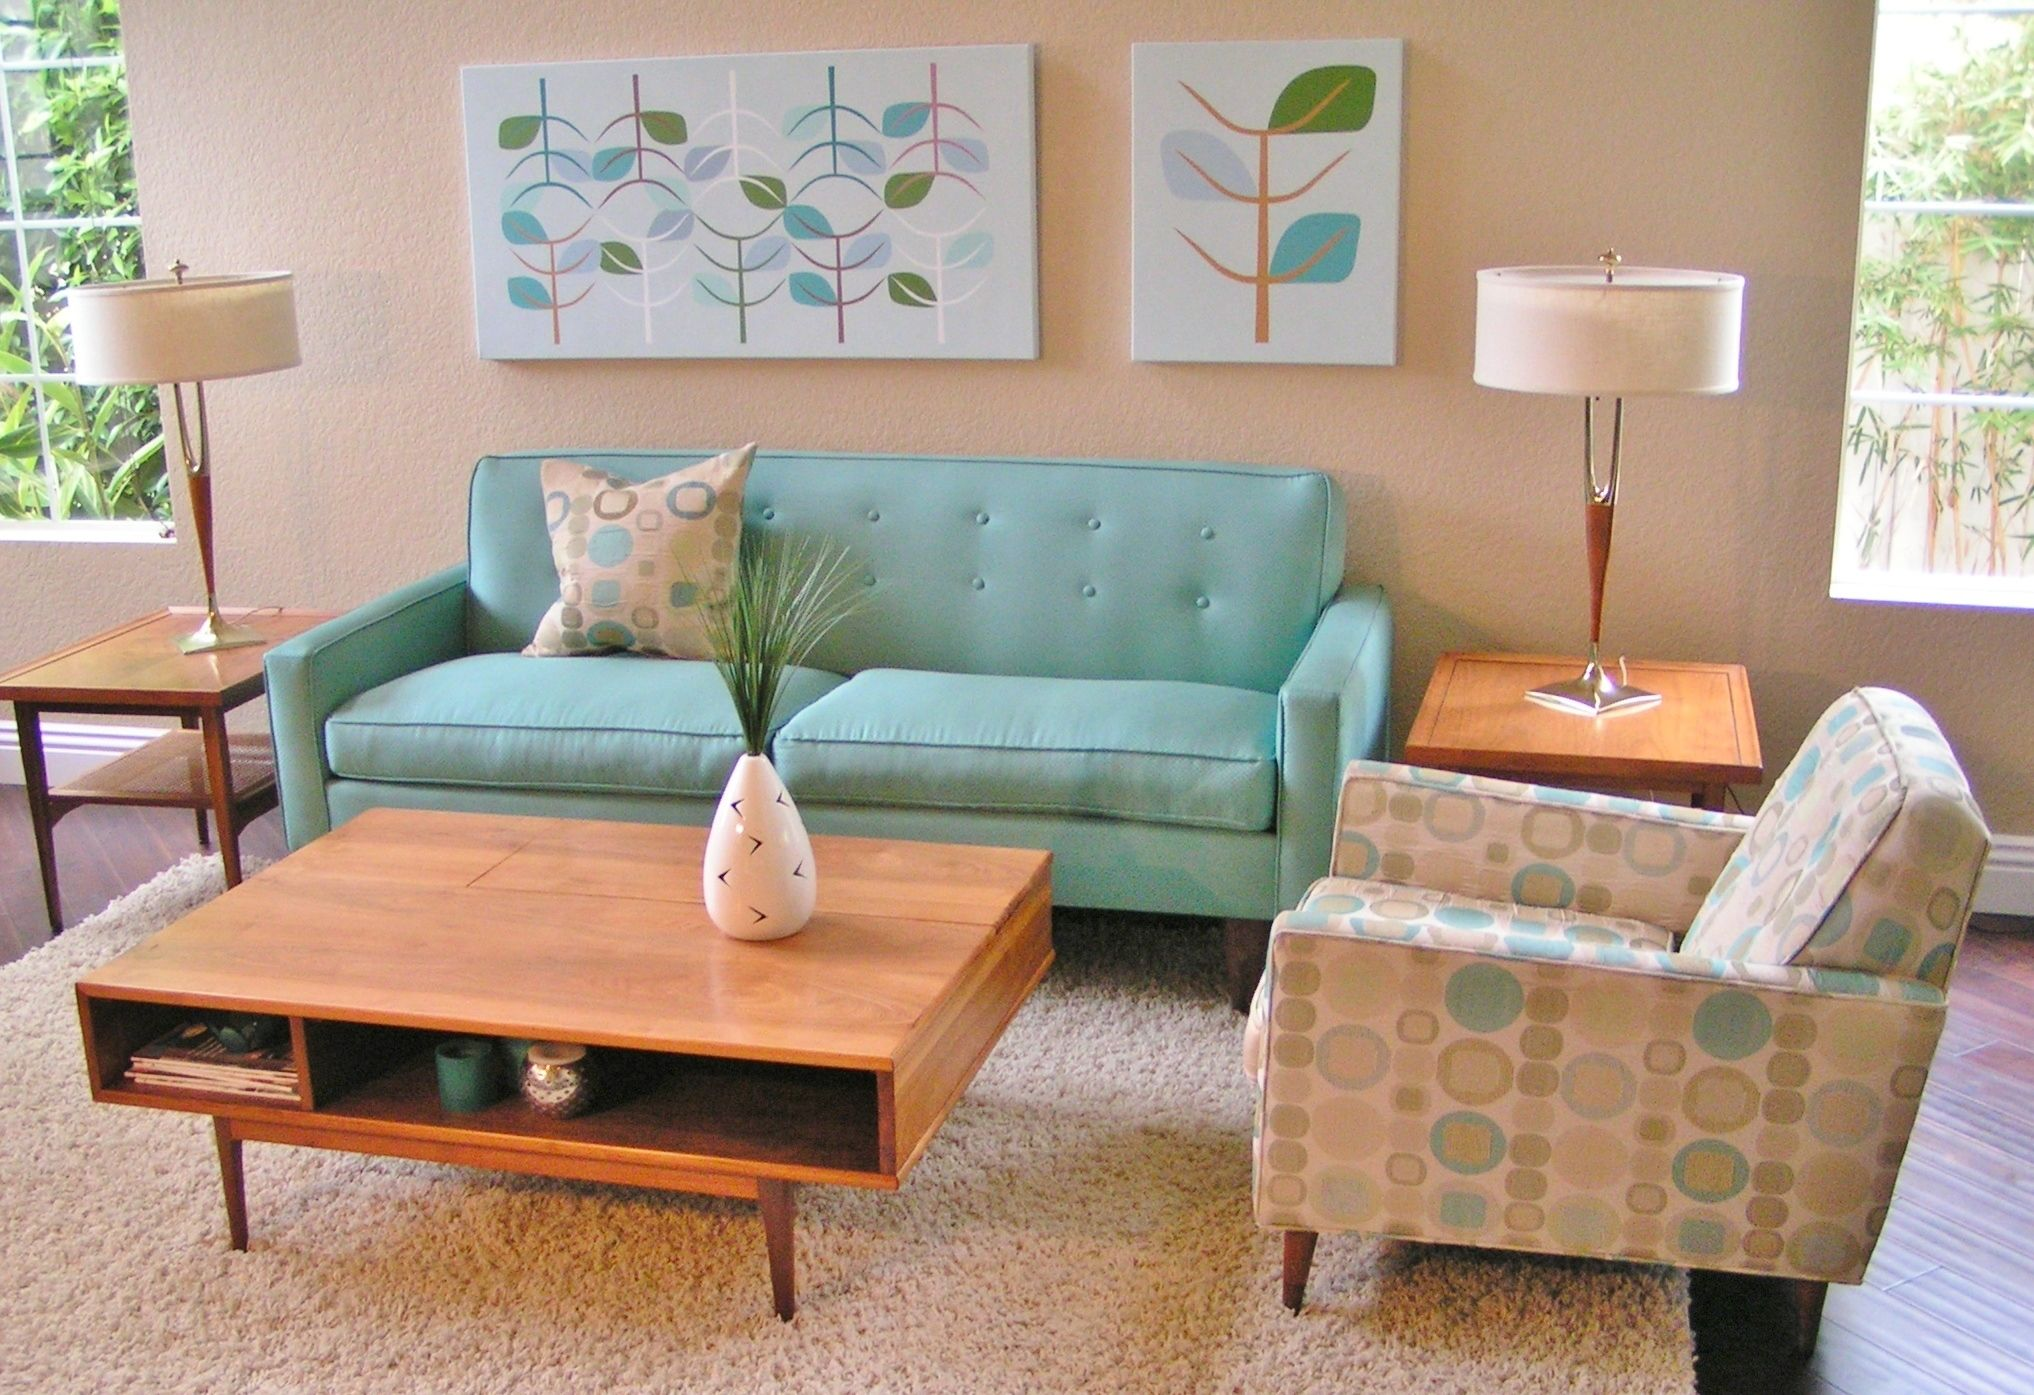 Best Great Mcm Furniture And Colors Mid Century Modern Decor 400 x 300